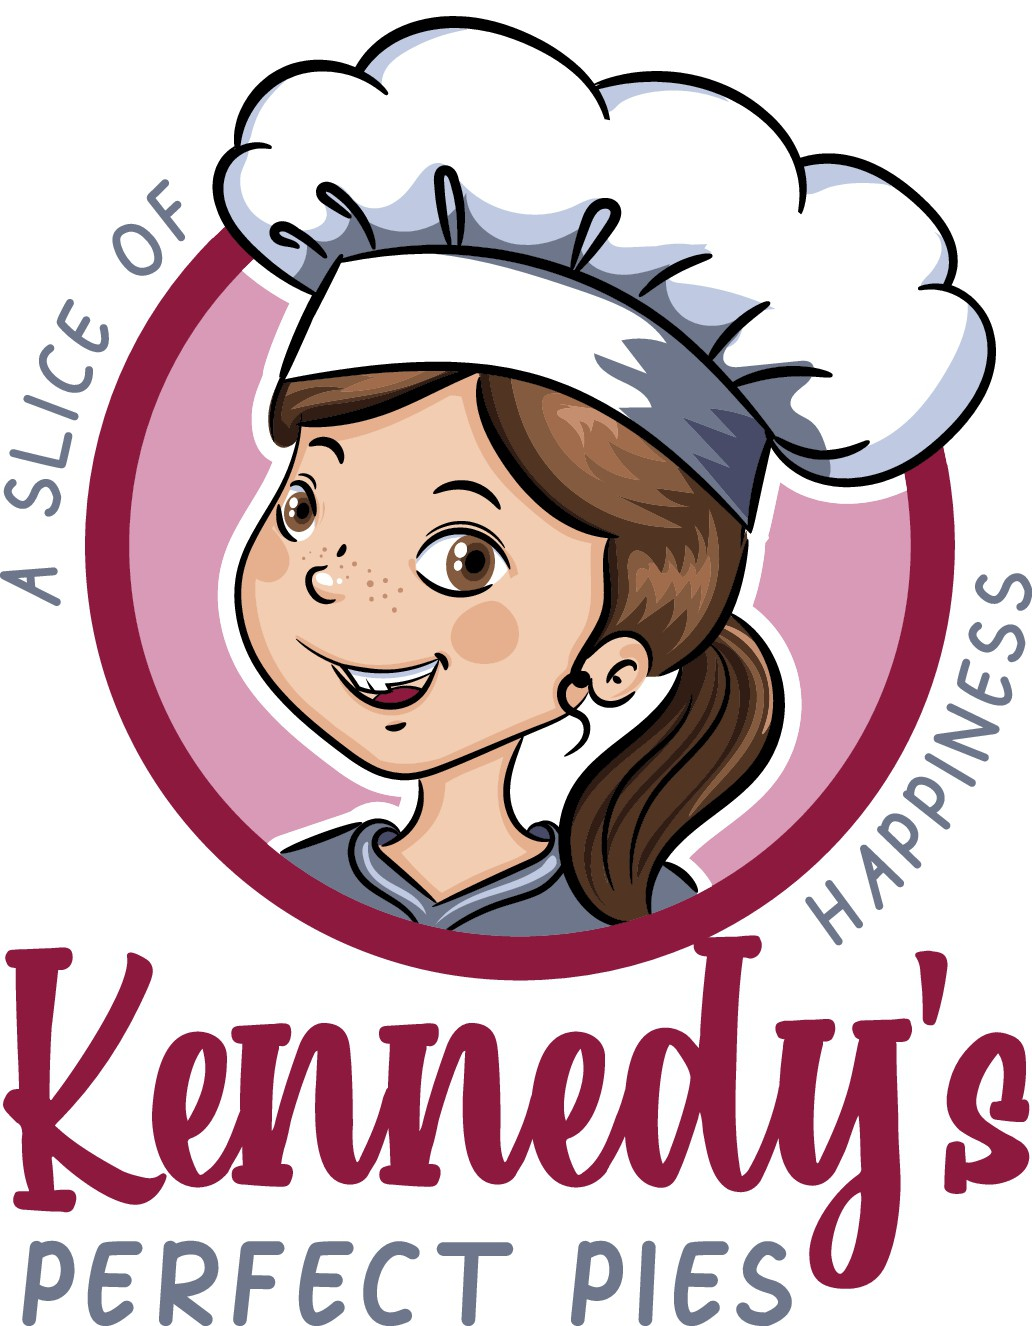 Fun, youthful logo for 9-year-old's baking business